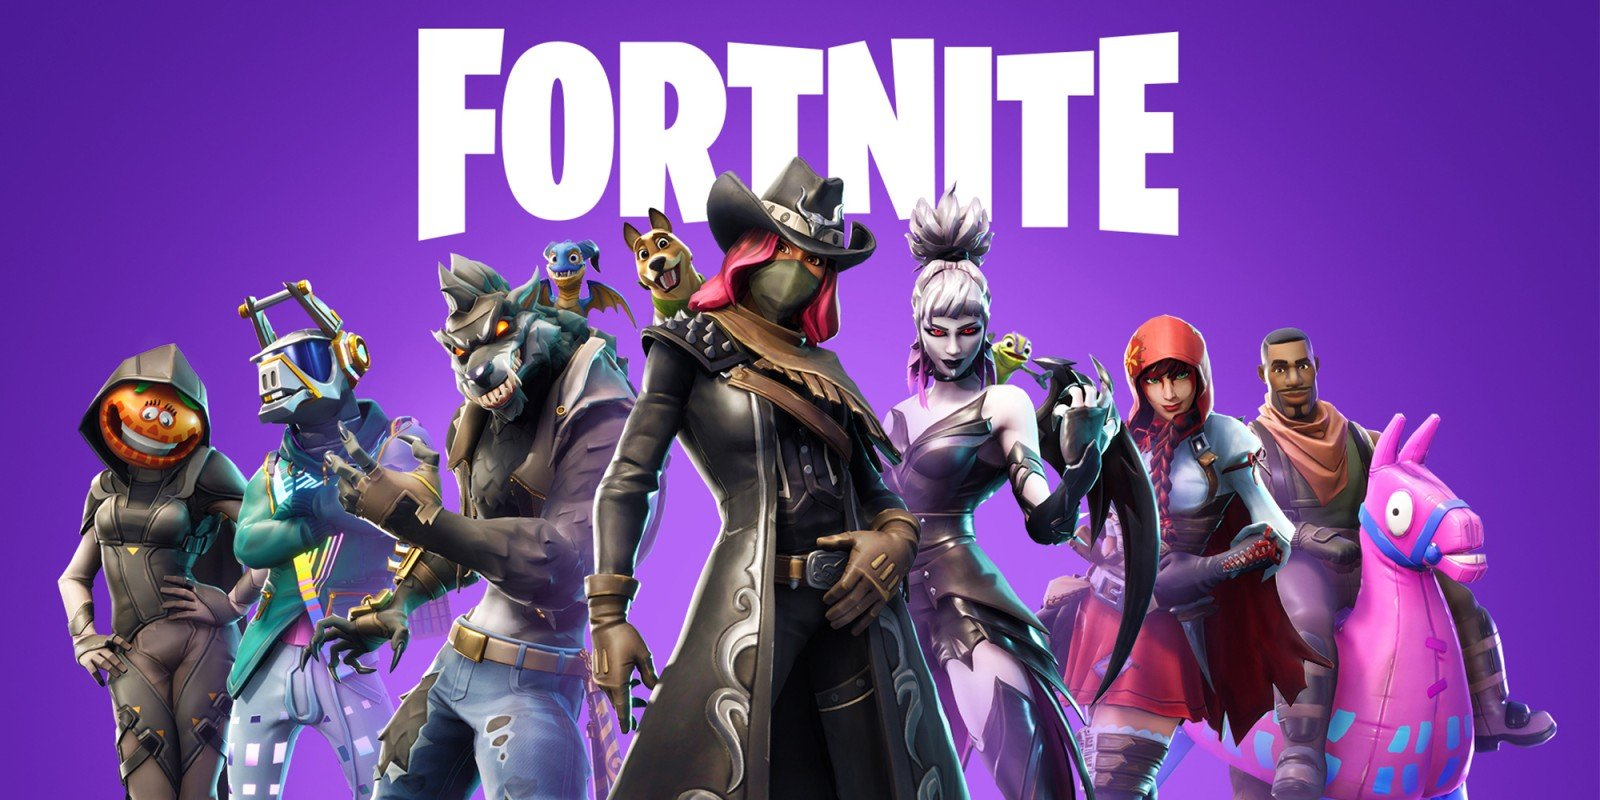 H2x1_NSwitchDS_Fortnite_image1600w